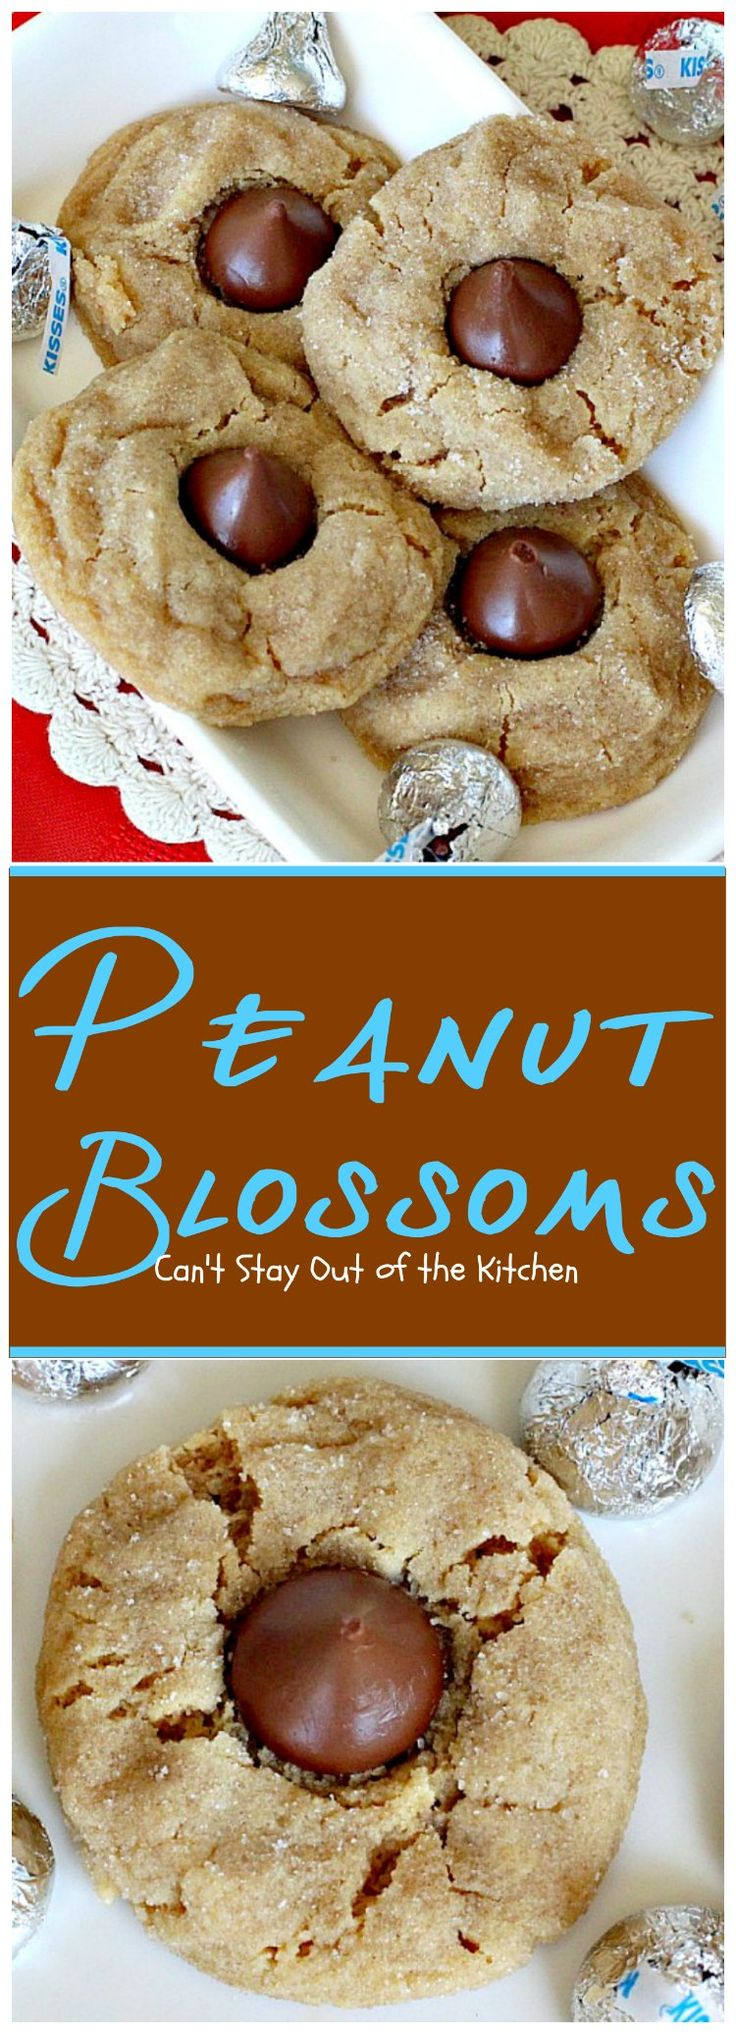 Peanut Blossoms | Can't Stay Out of the Kitchen